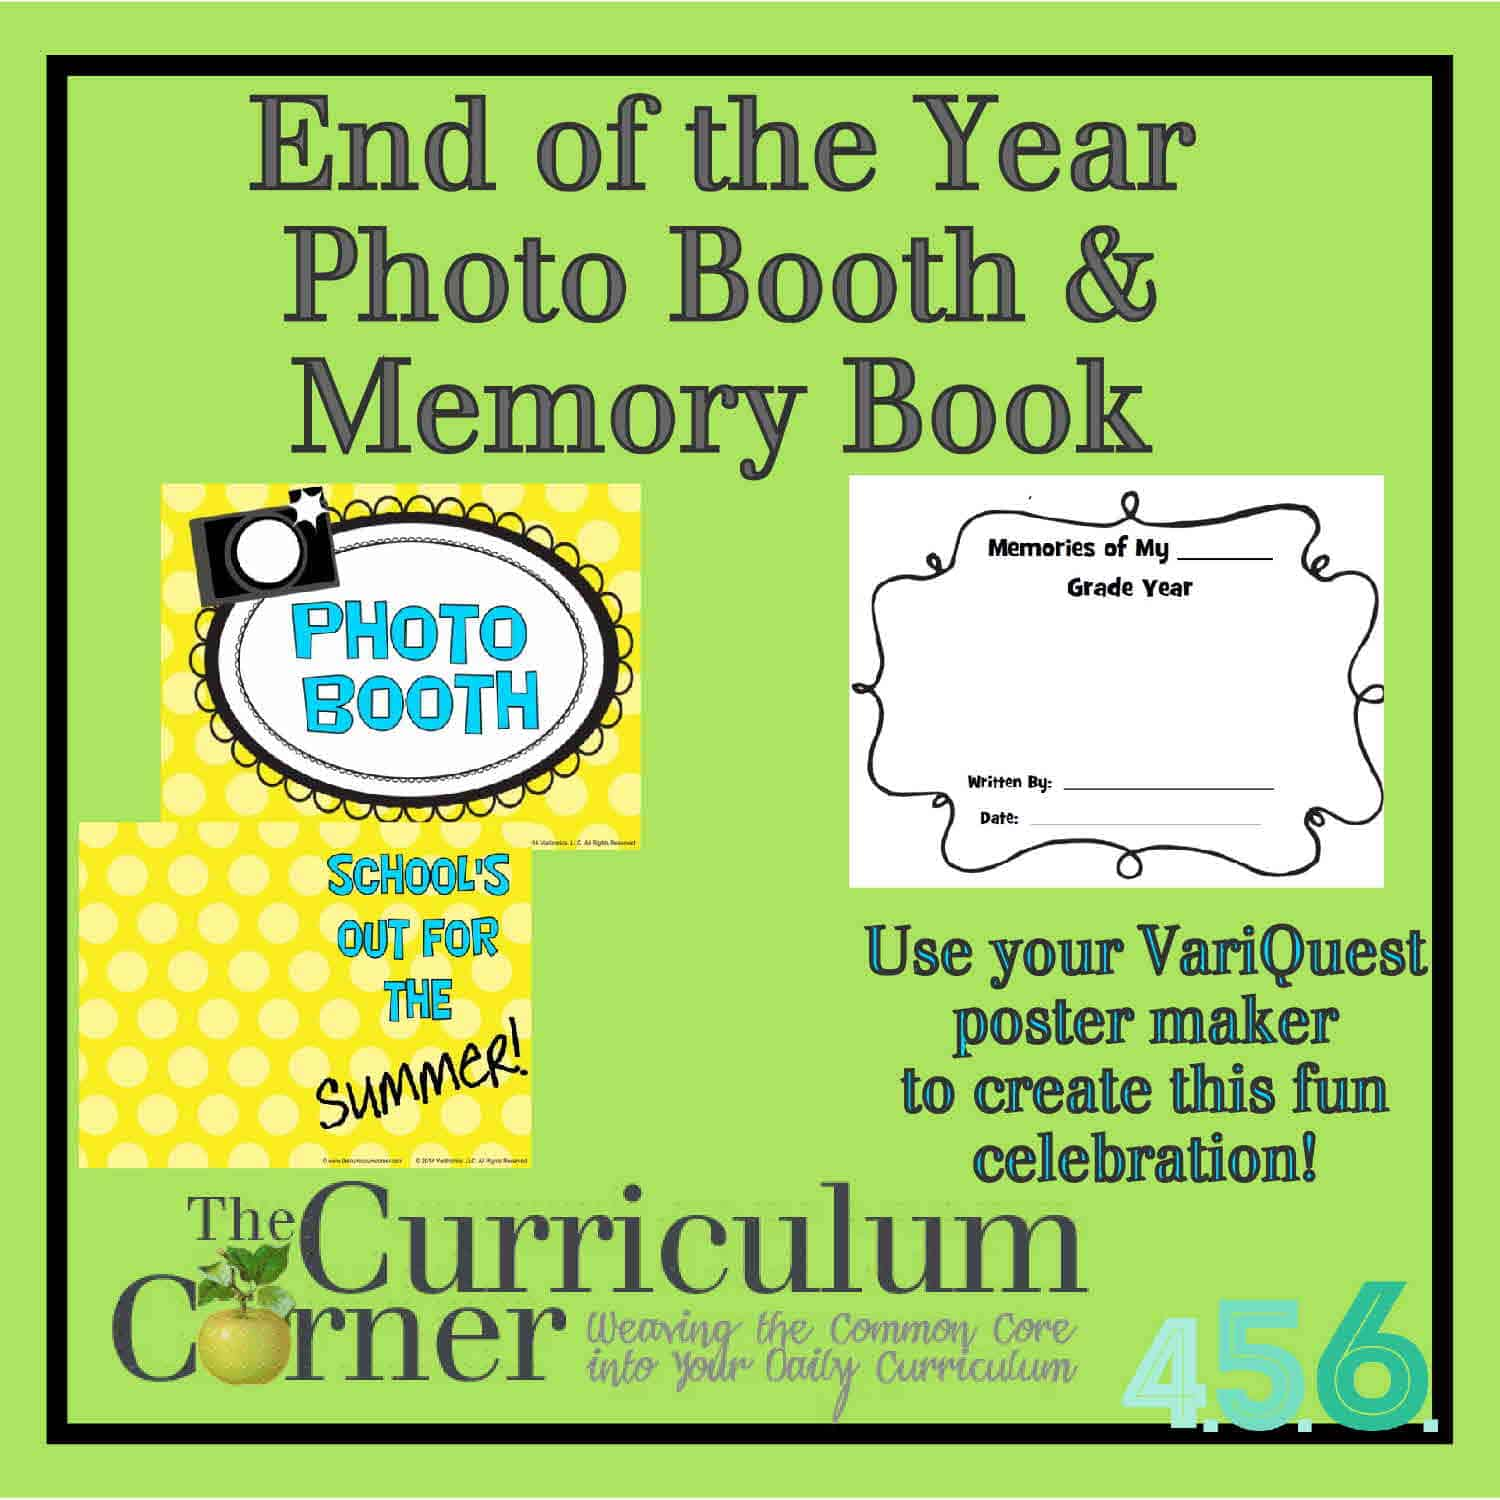 End of Year Photo Booth & Memory Book